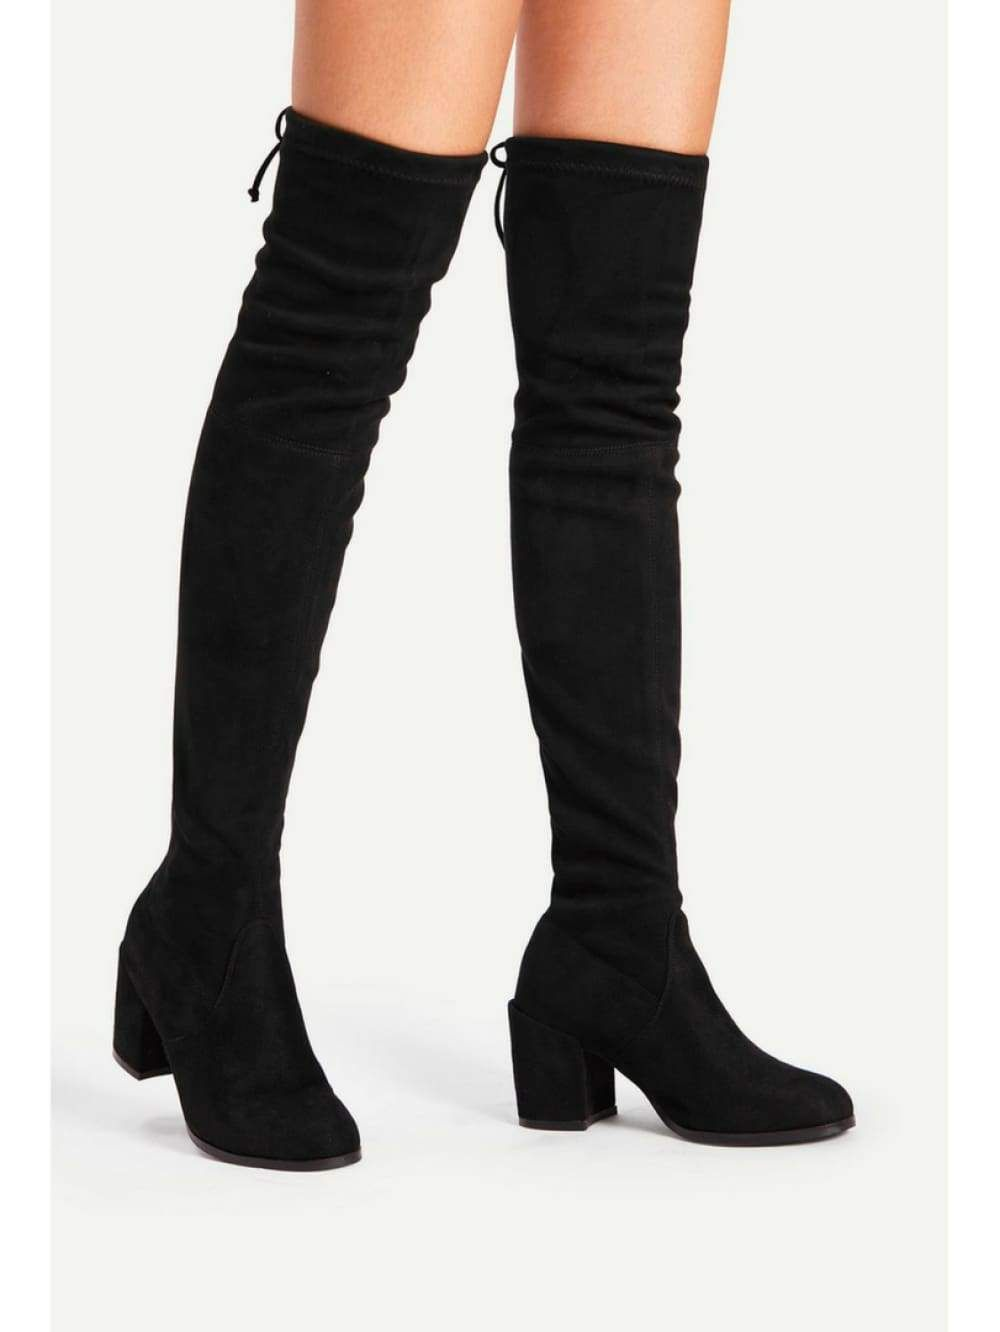 3935992939f5 I like both knee-high boots and over-the-knee boots